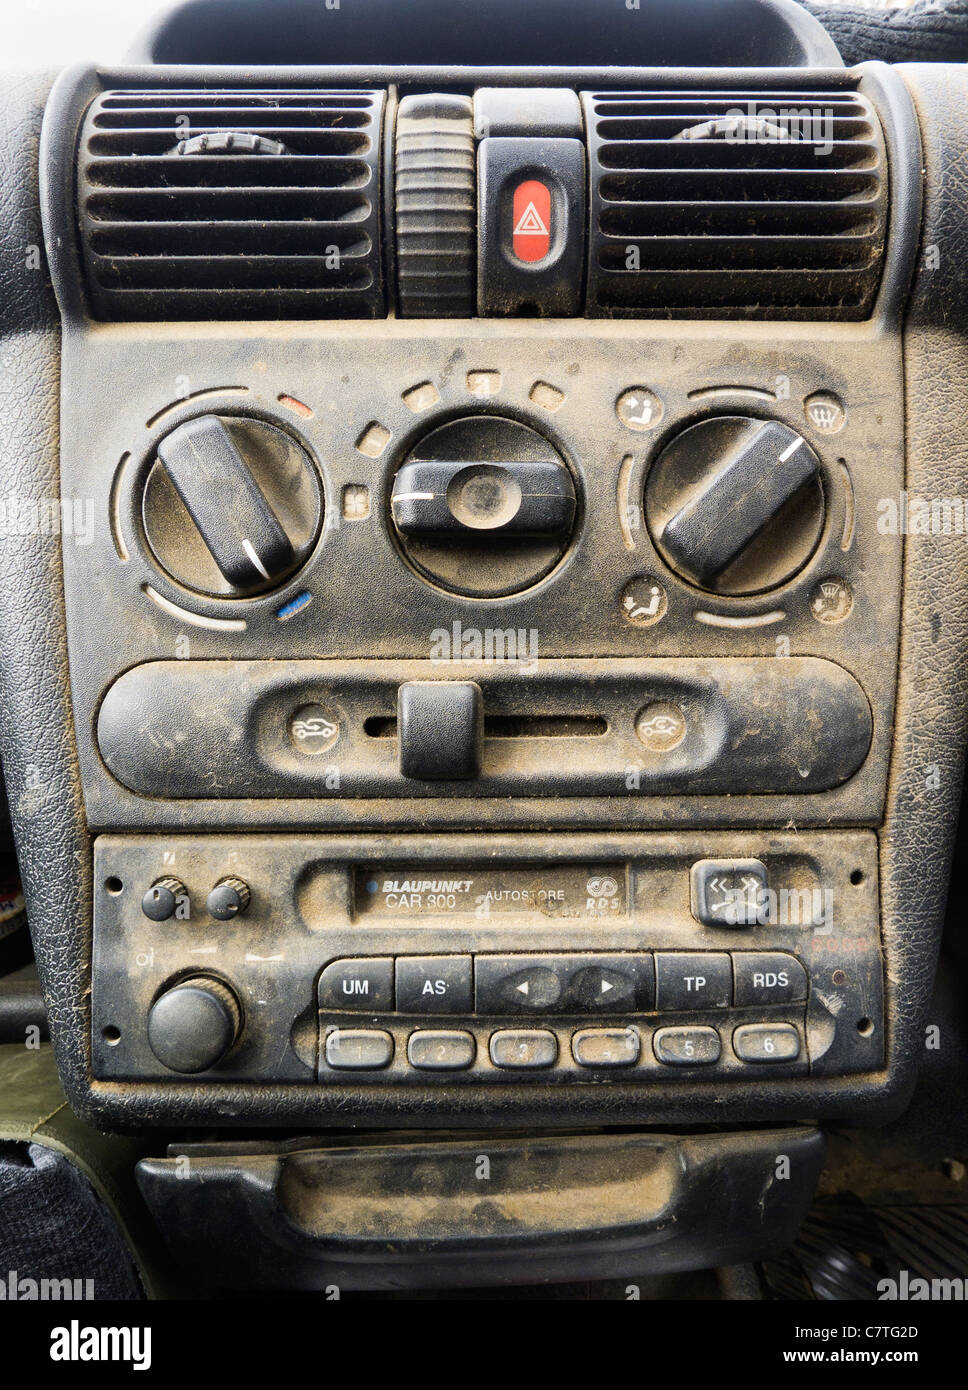 a very dirty car interior and dashboard stock photo 39262789 alamy. Black Bedroom Furniture Sets. Home Design Ideas